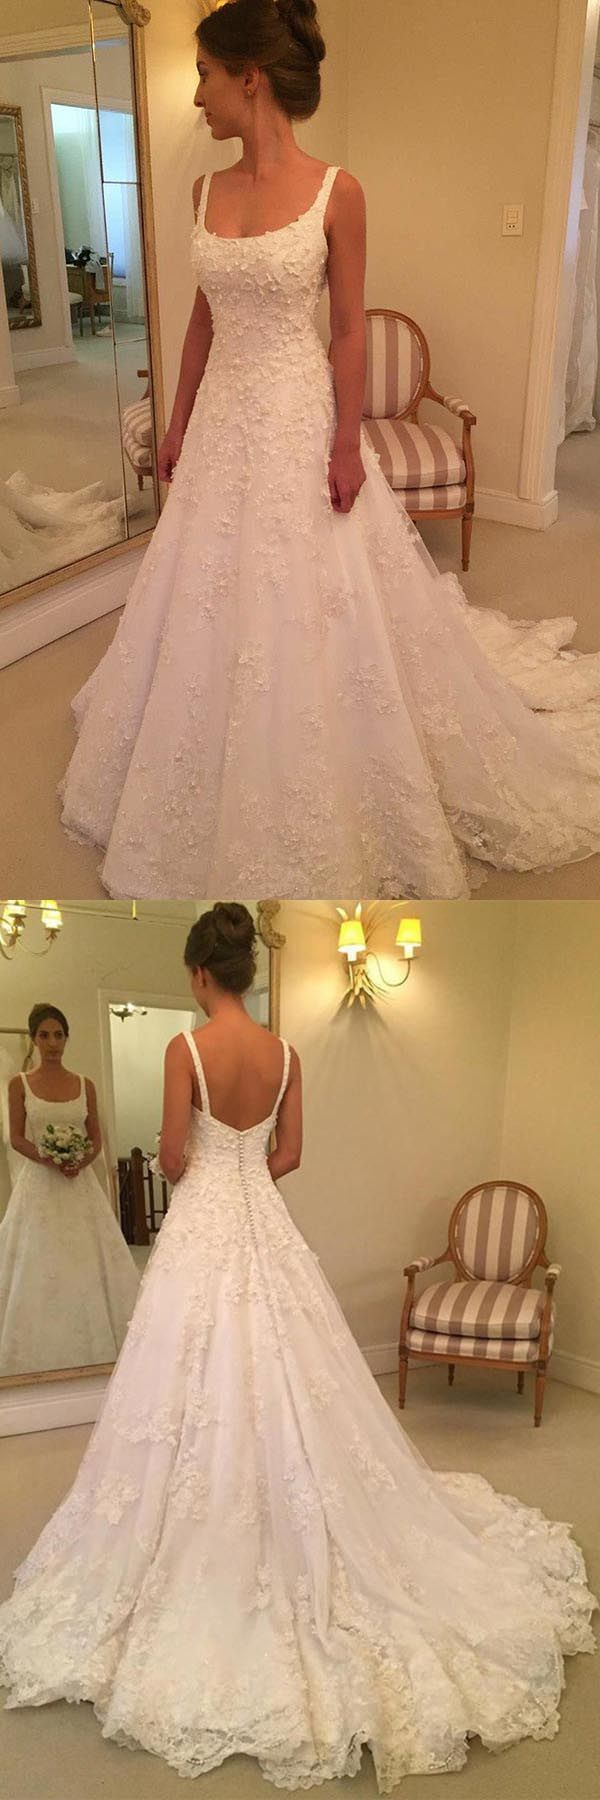 A-line Scoop Sweep Train Sleeveless Wedding Dress with Appliques WD218 #weddings #weddinggowns #lace #a-line #ivory #pgmdress #weddingdress #sweeptrain #weddingdresses #laceweddingdresses